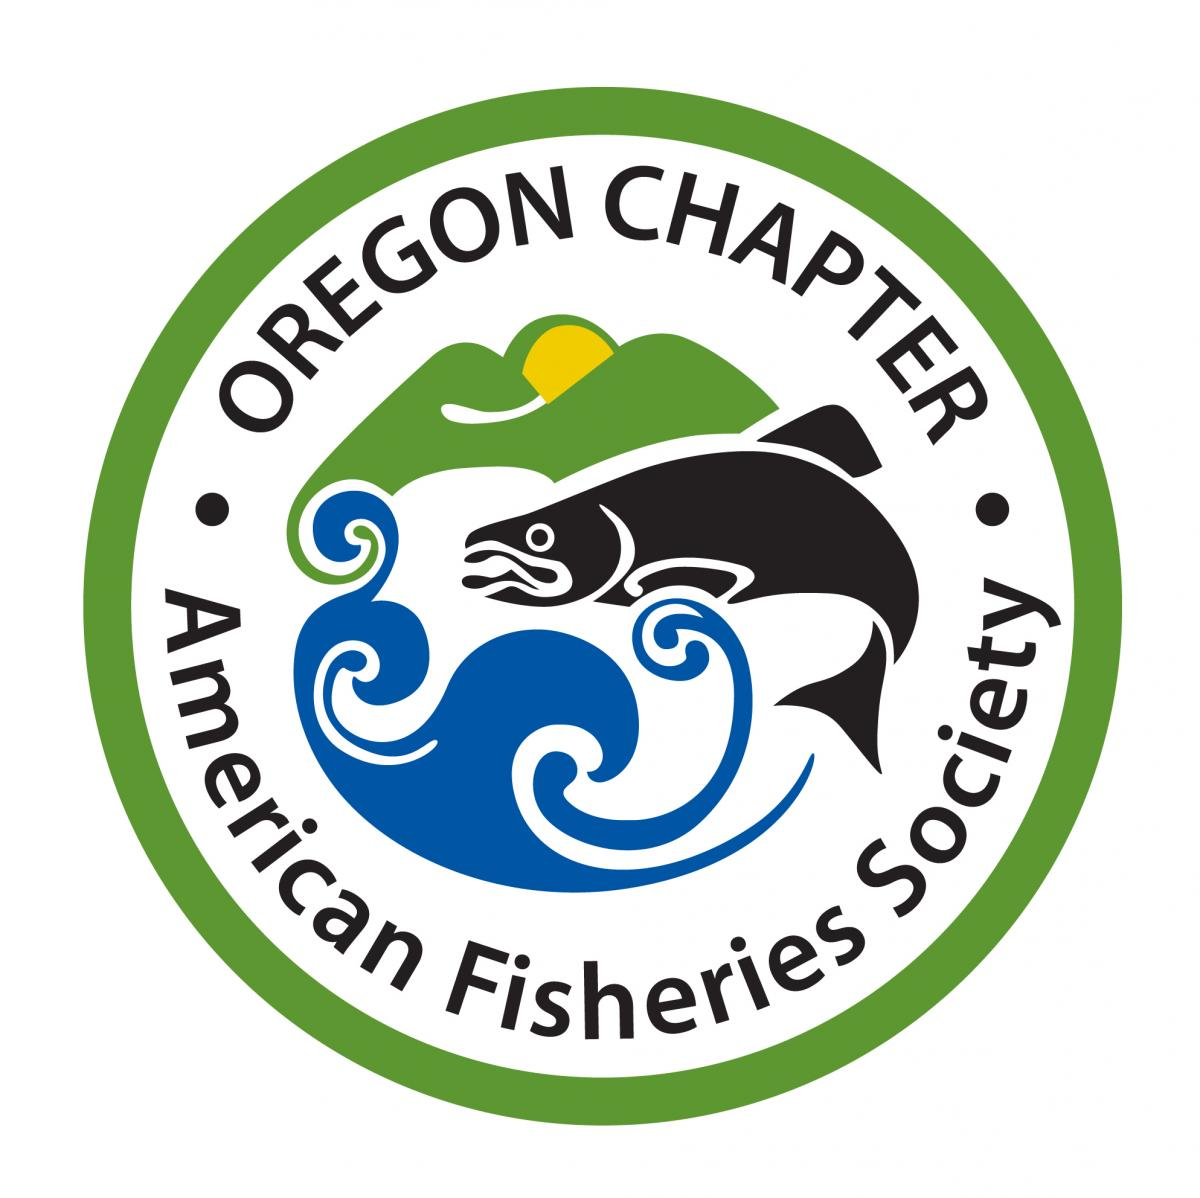 Oregon Chapter of the American Fisheries Society